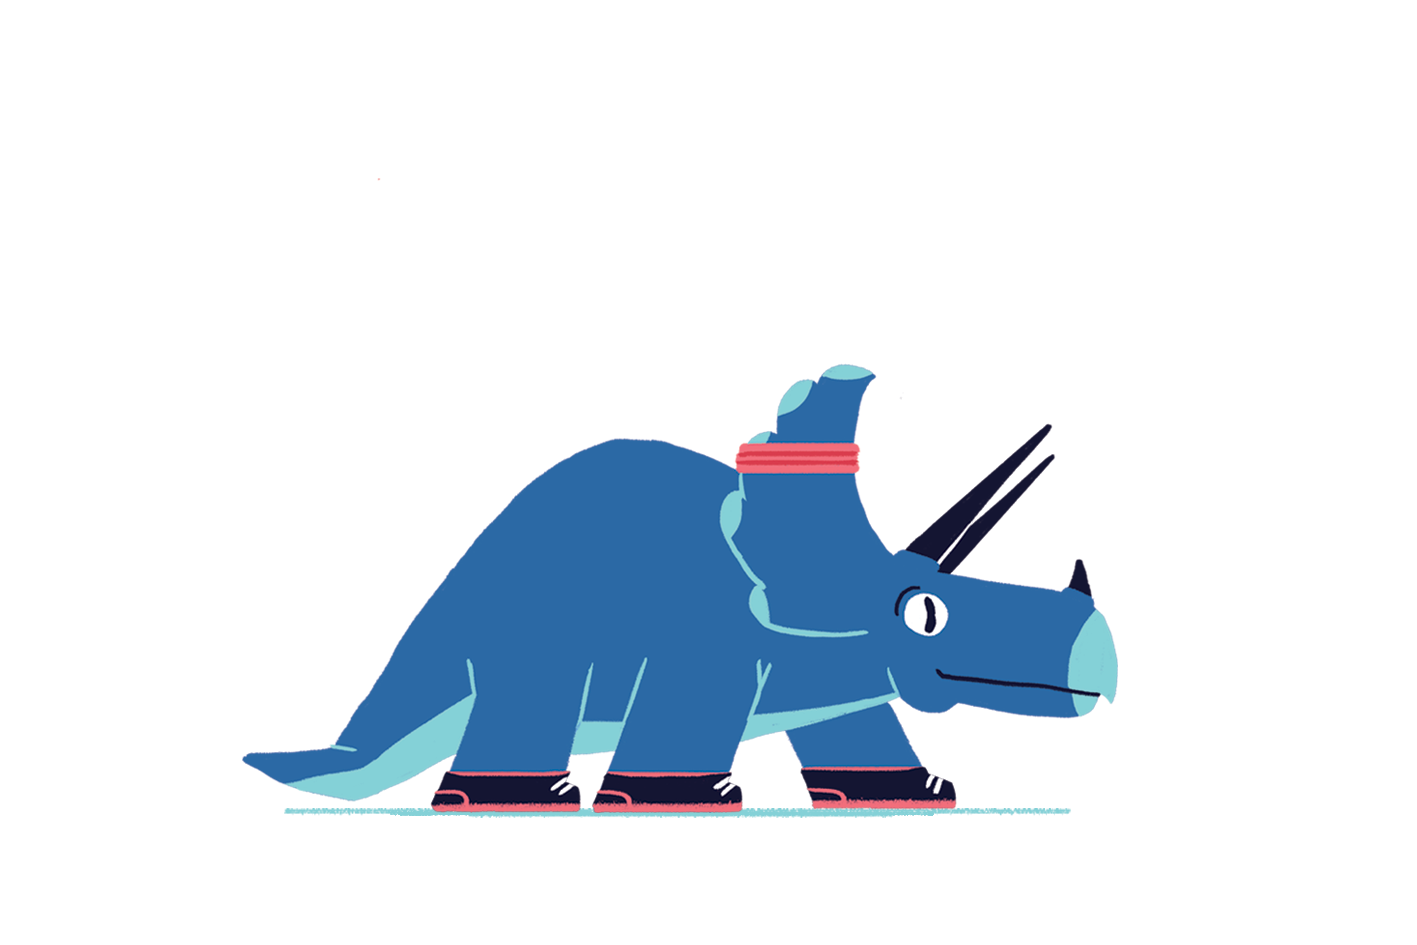 dino_02.png